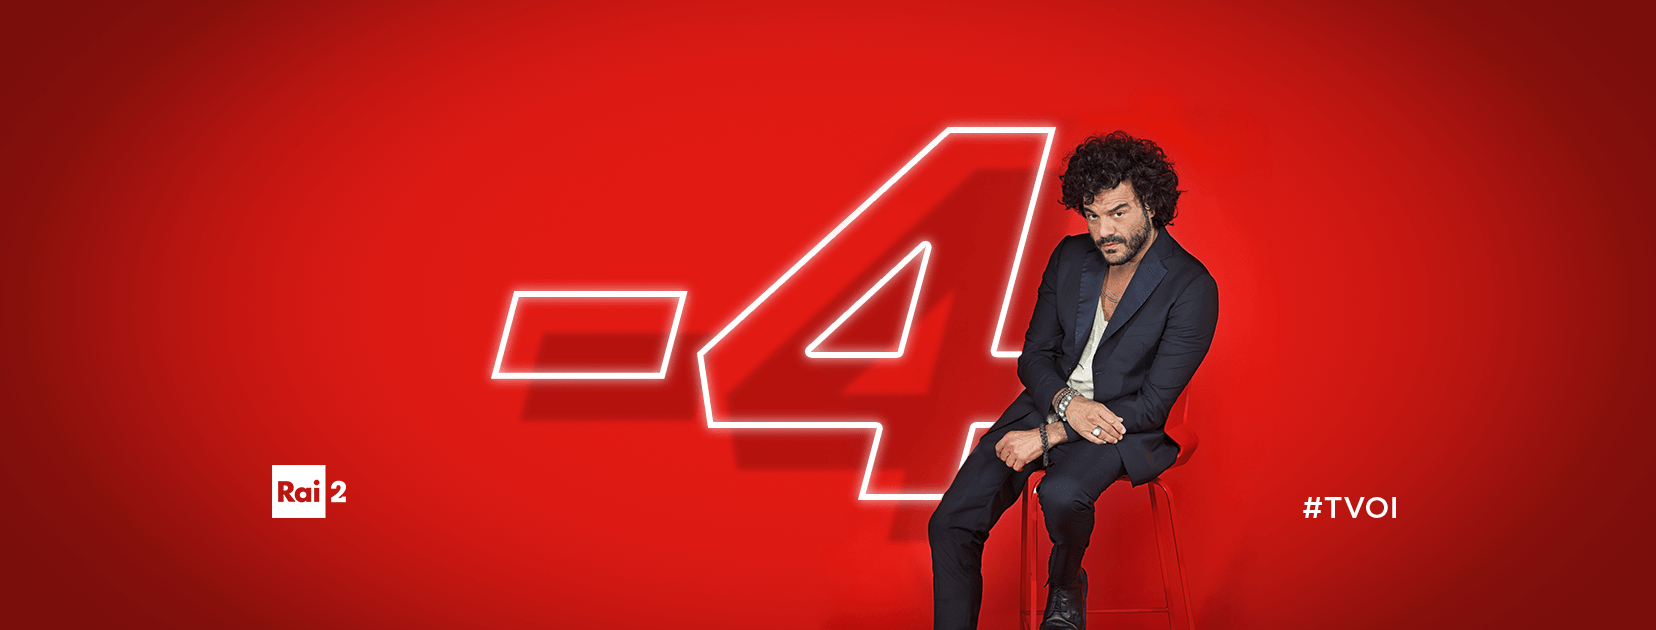 francesco renga the voice 2018